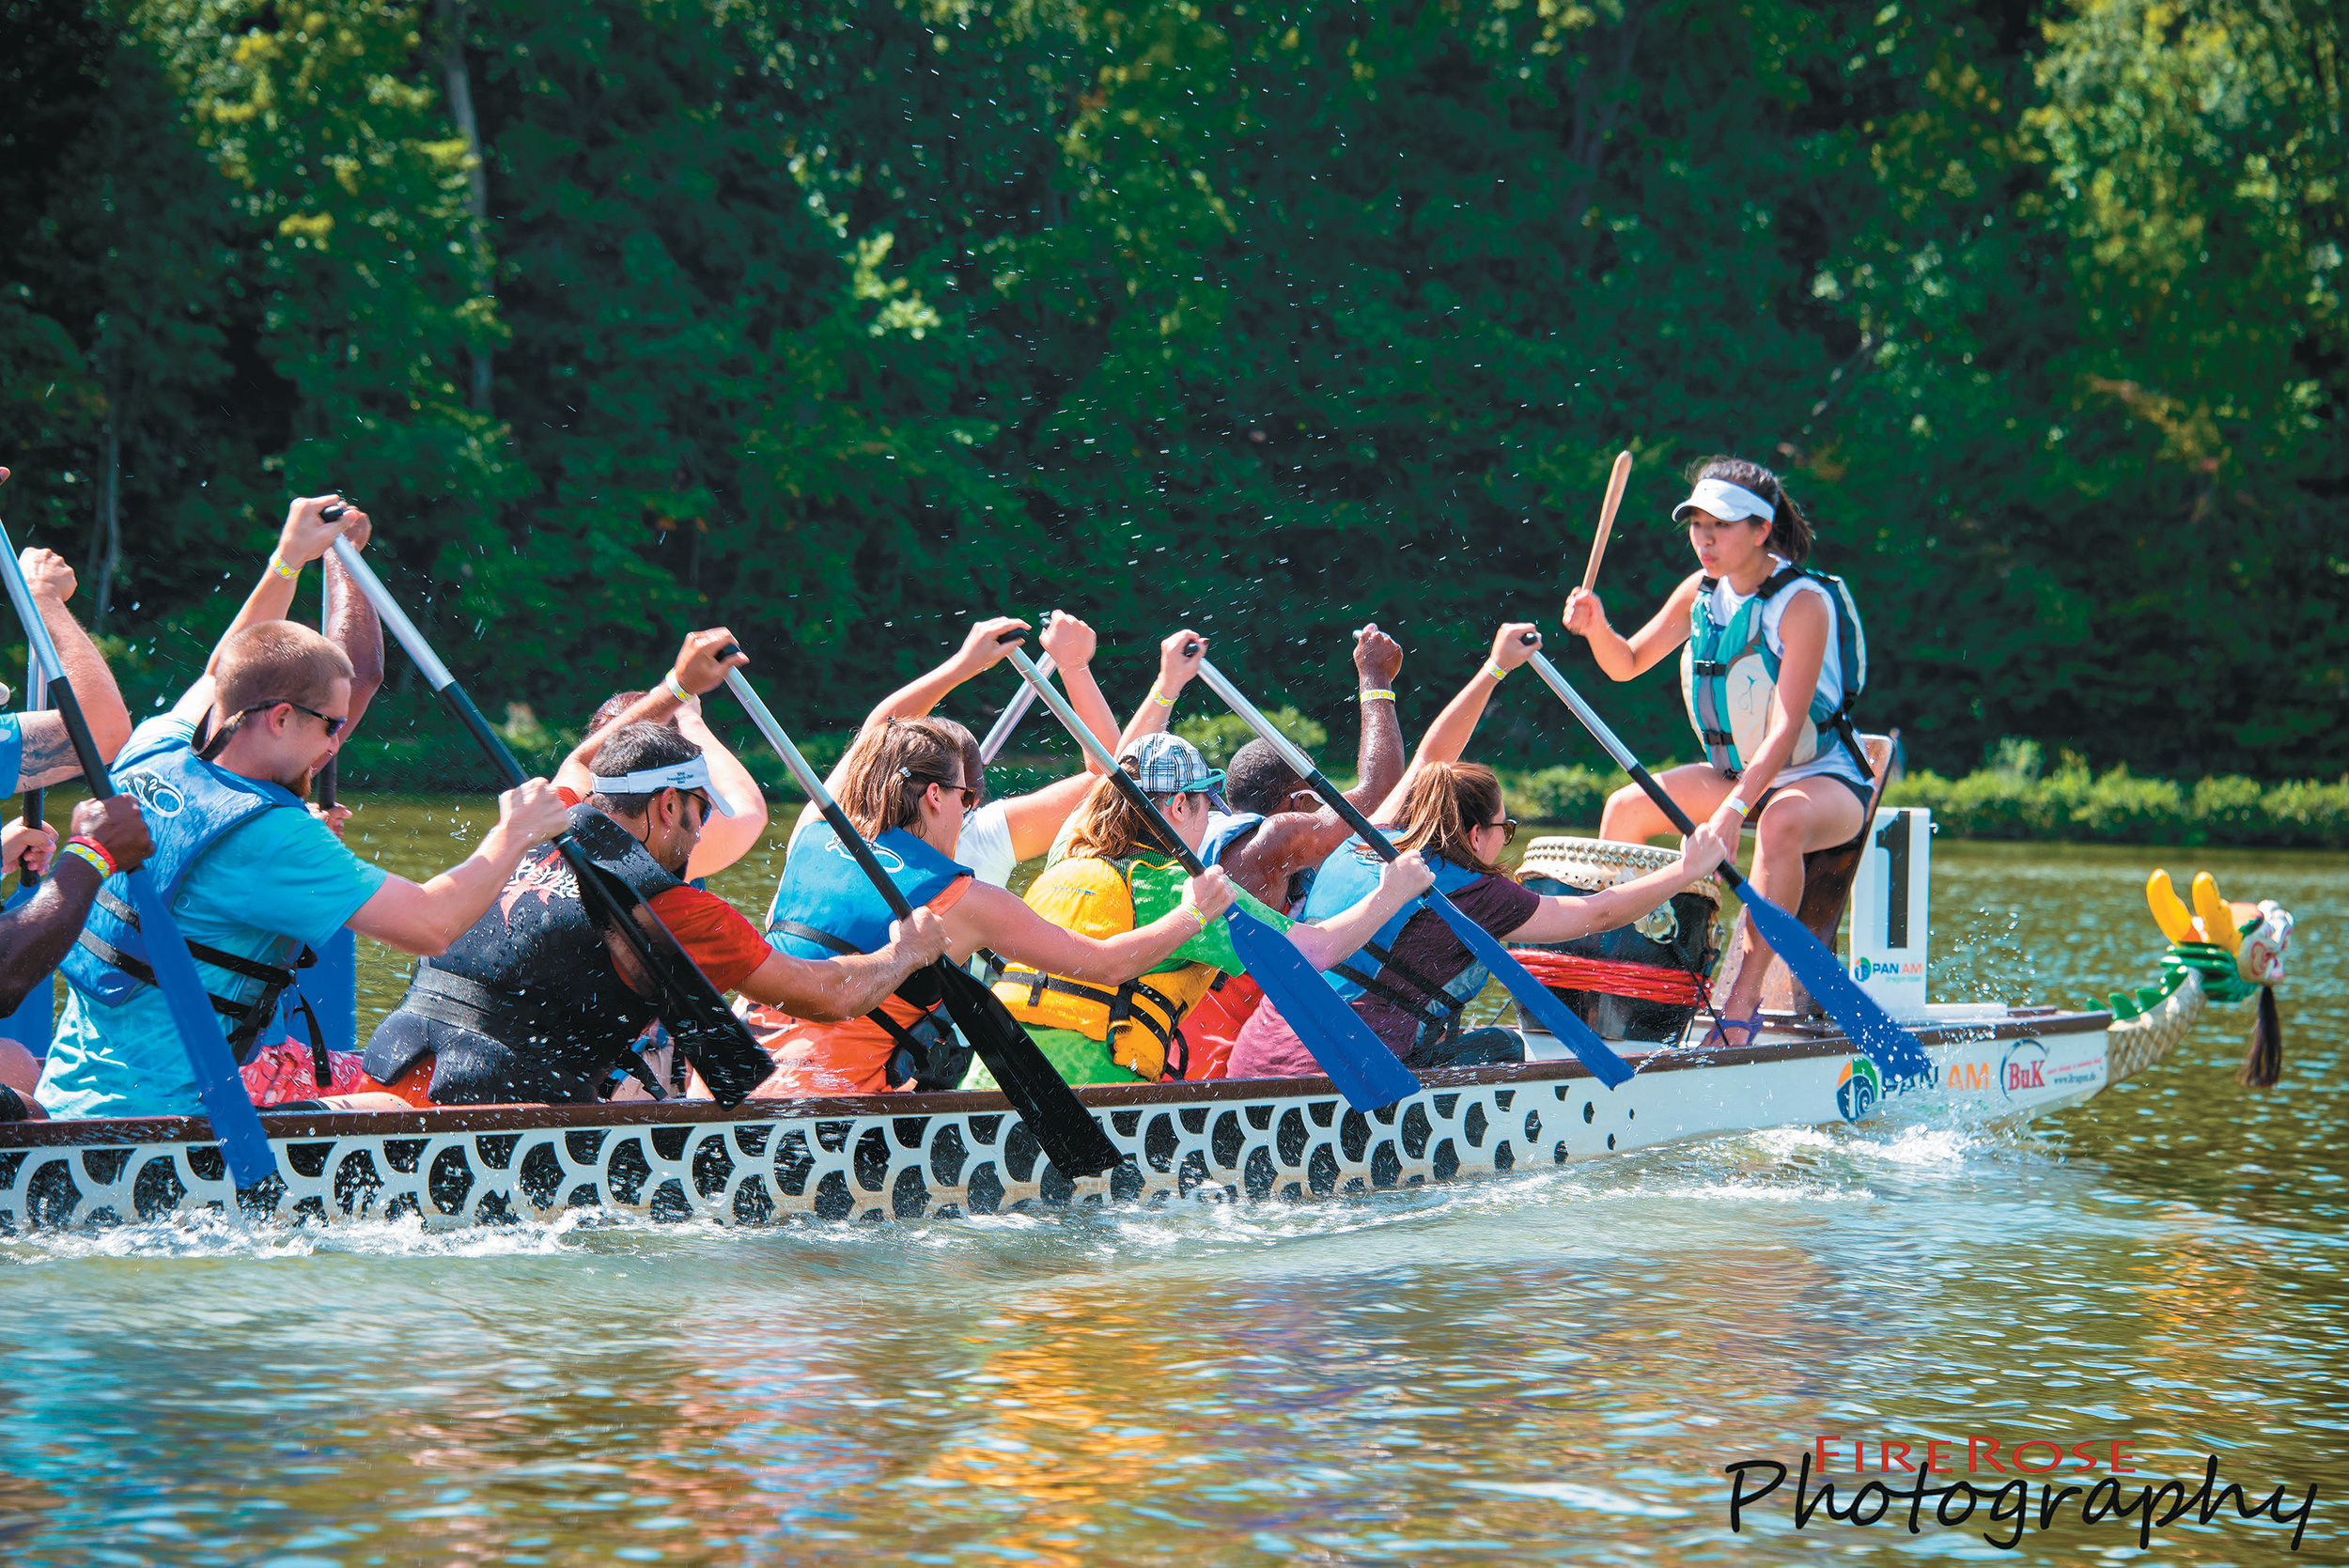 asian focus nc hosts the dragon boat festival each year at koka booth amphitheatre in Cary